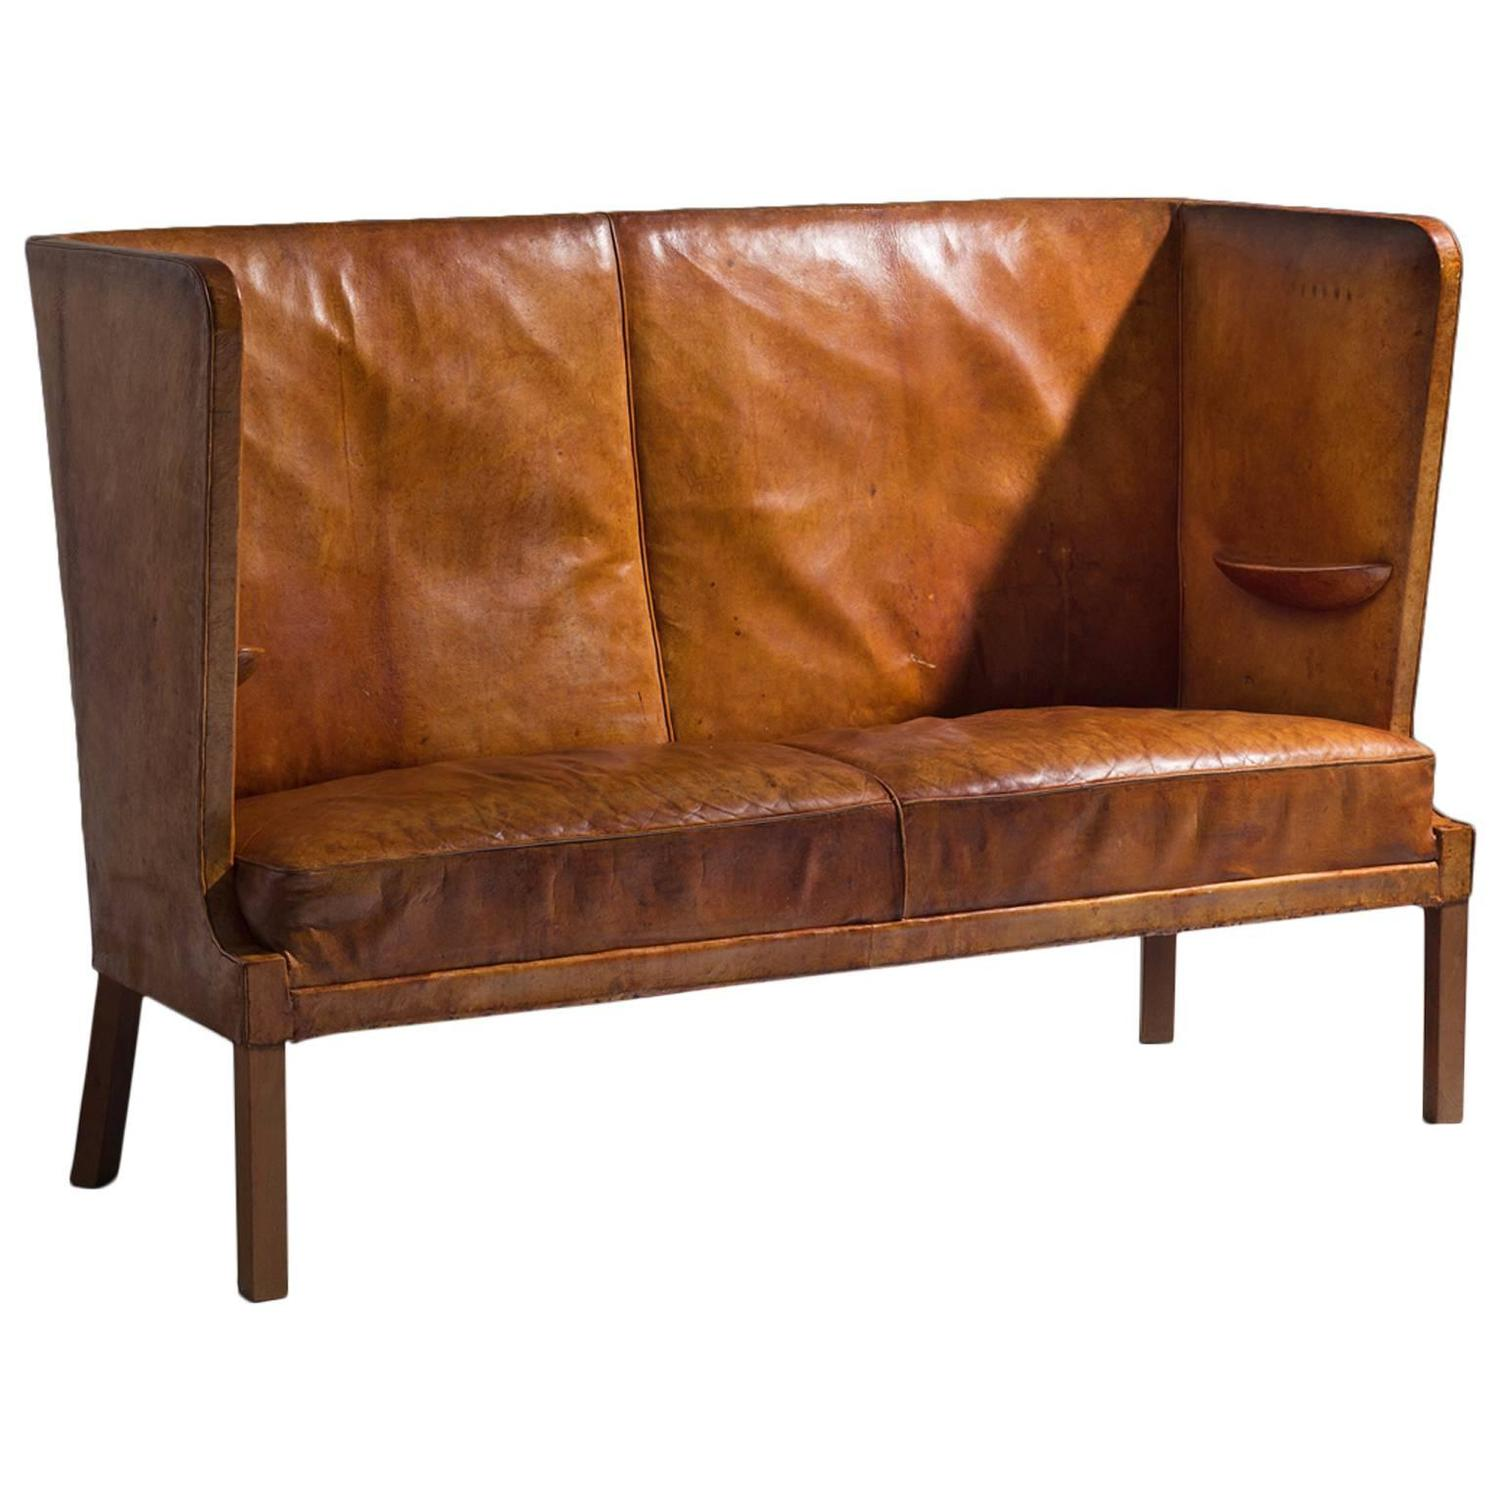 frits henningsen early high backed sofa in original cognac leather for sale at 1stdibs. Black Bedroom Furniture Sets. Home Design Ideas